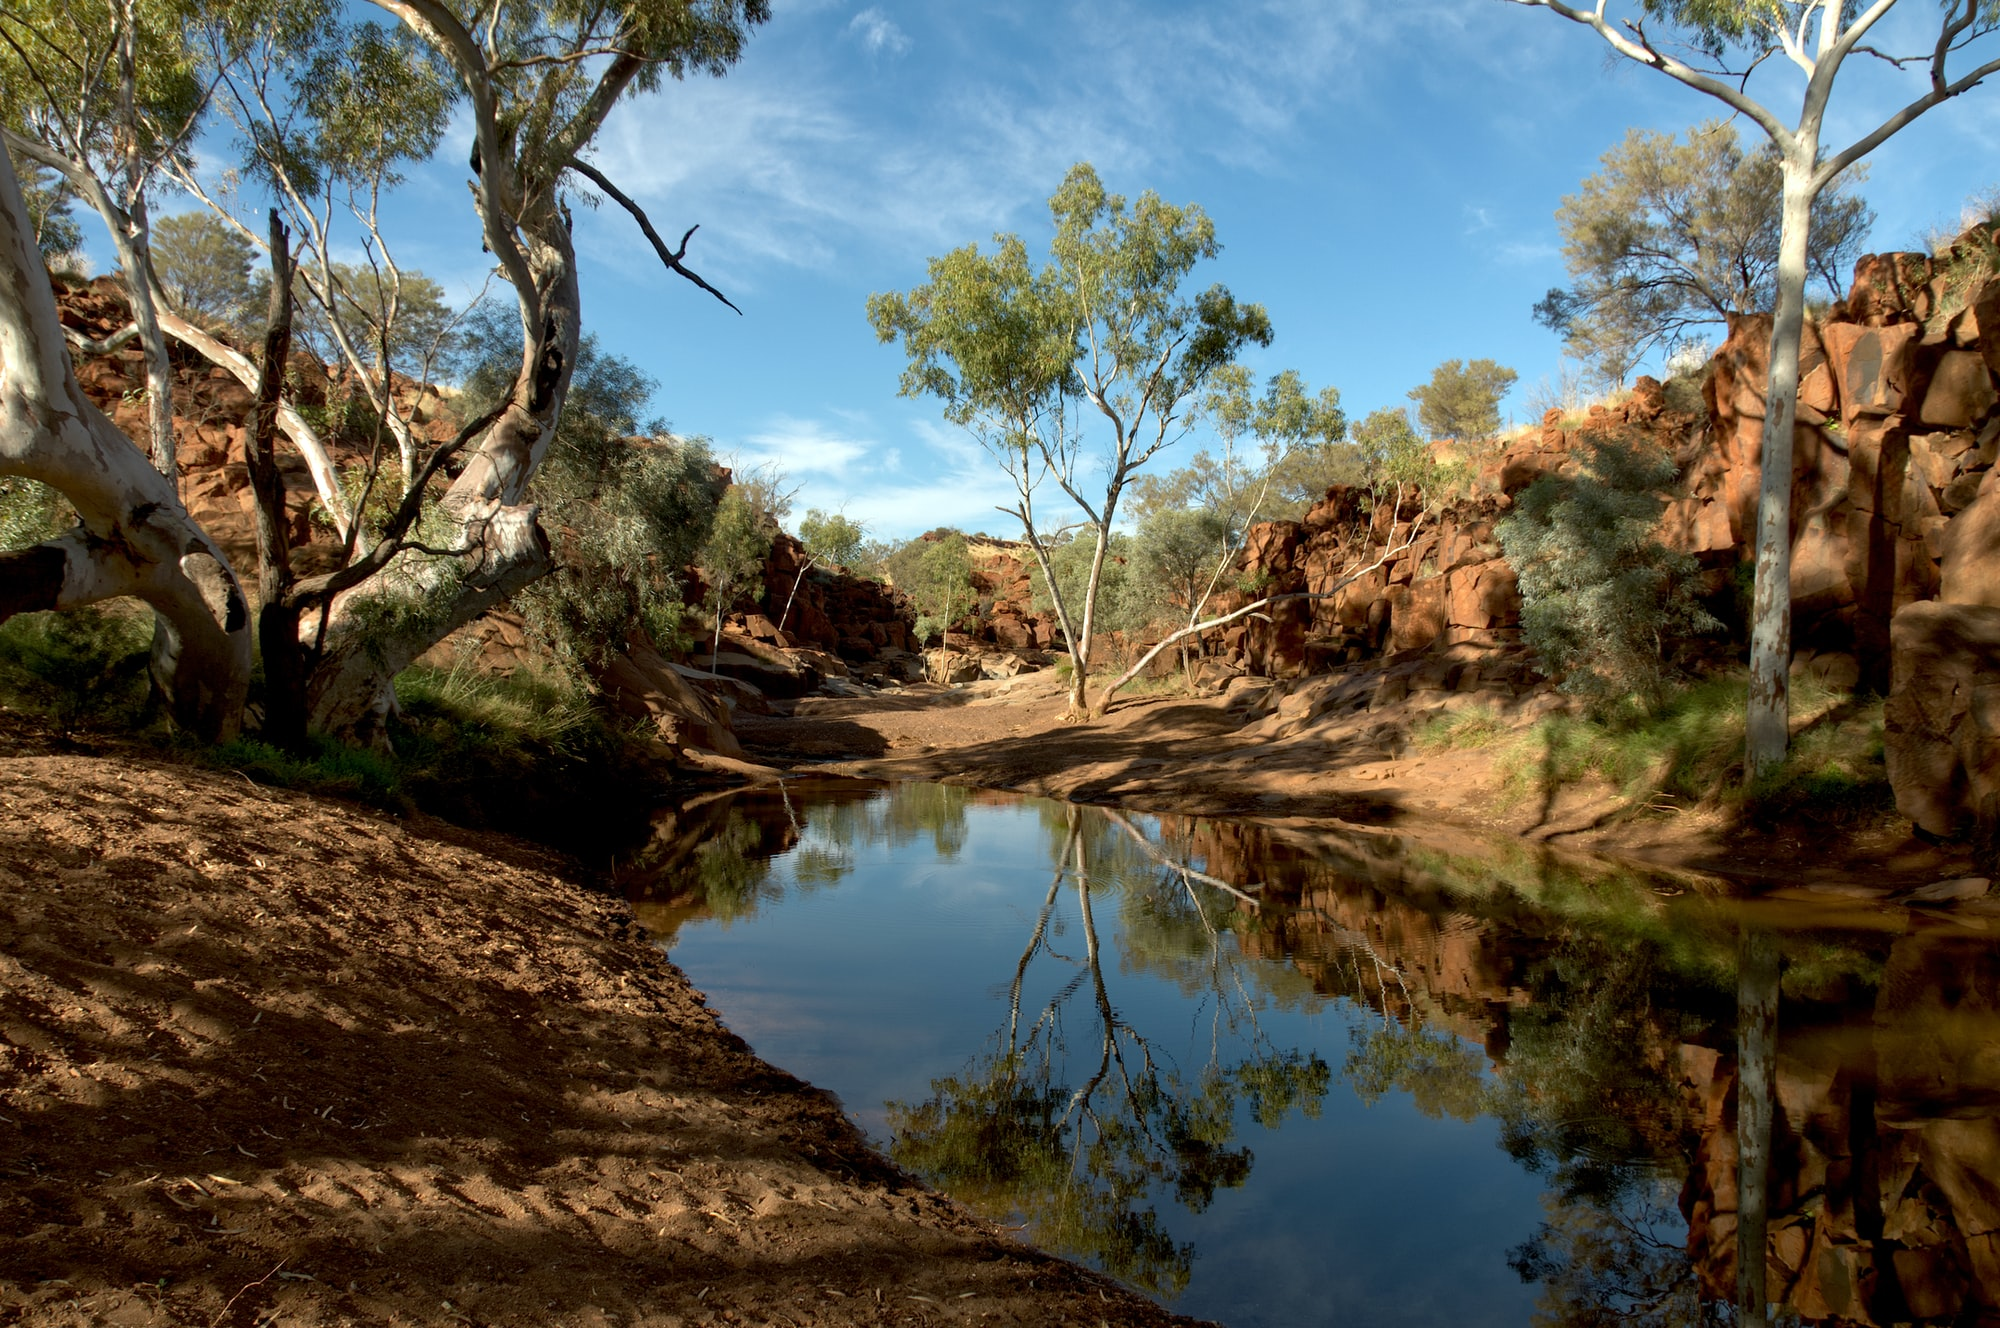 Part of Weeli Wolli Creek a billabong in Western Australia. This is in April heading into winter; best time of year as it doesn't get too hot (in summer 49C/120F). Near the mining town of Newman. Could only get here by 4-wheel drive & a short hike. Indigenous Australian rock carvings - upwards to 45,000 years old - on the surrounding rock.